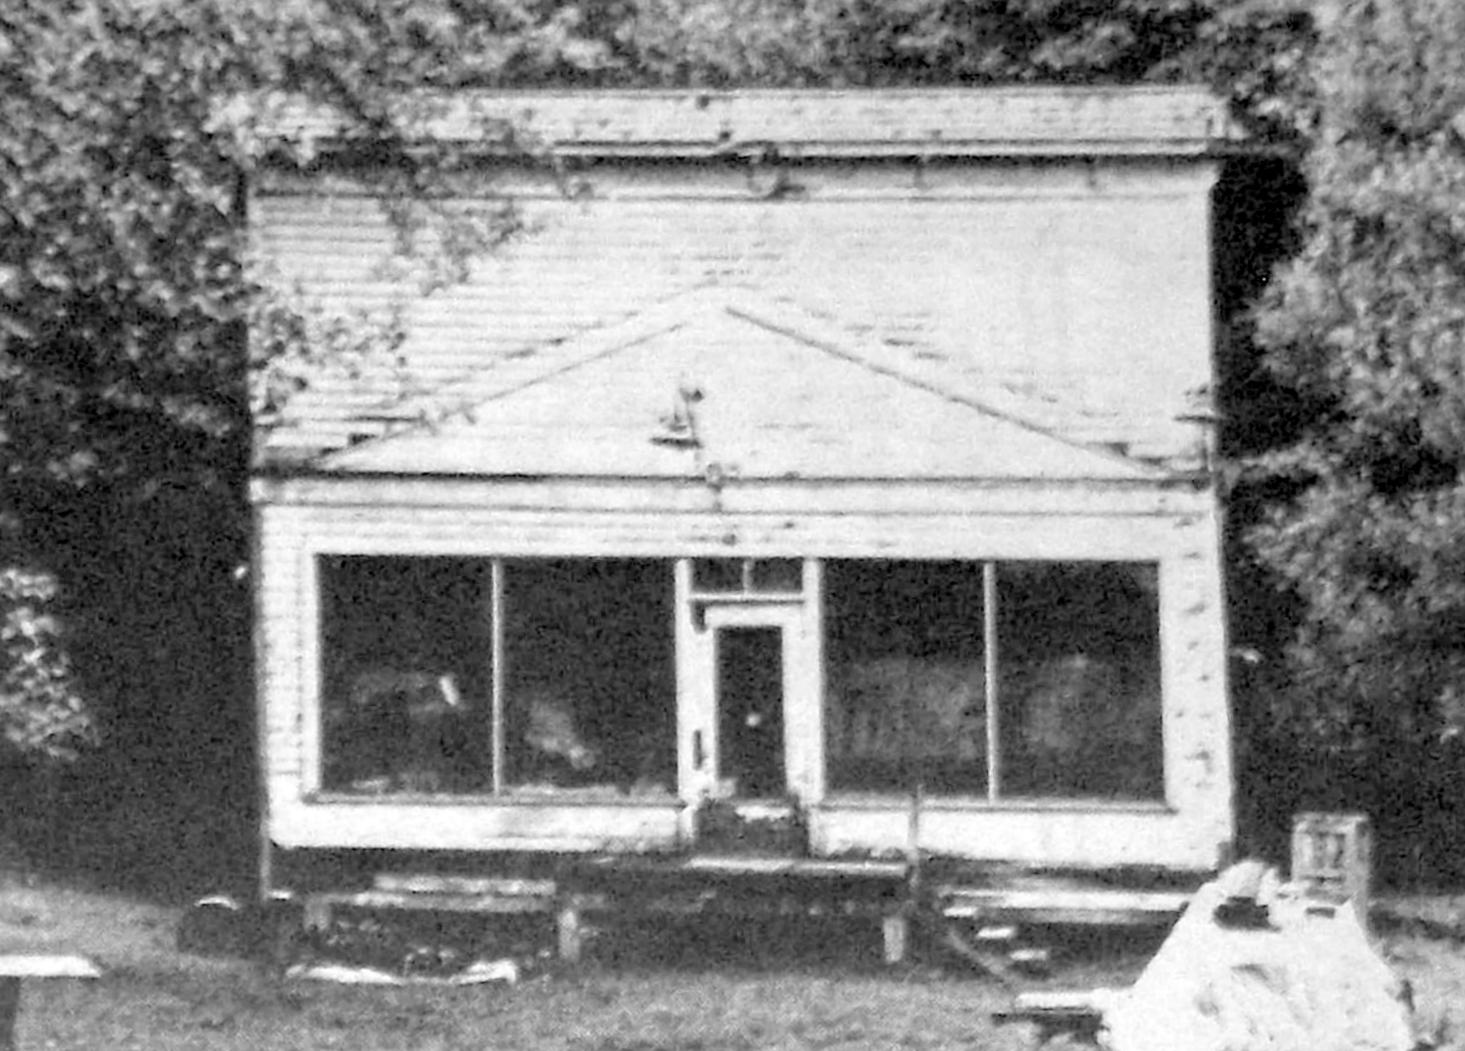 One Of Maple Valleyu0027s First Stores, Once Well Stocked And Standing Where  The Maple